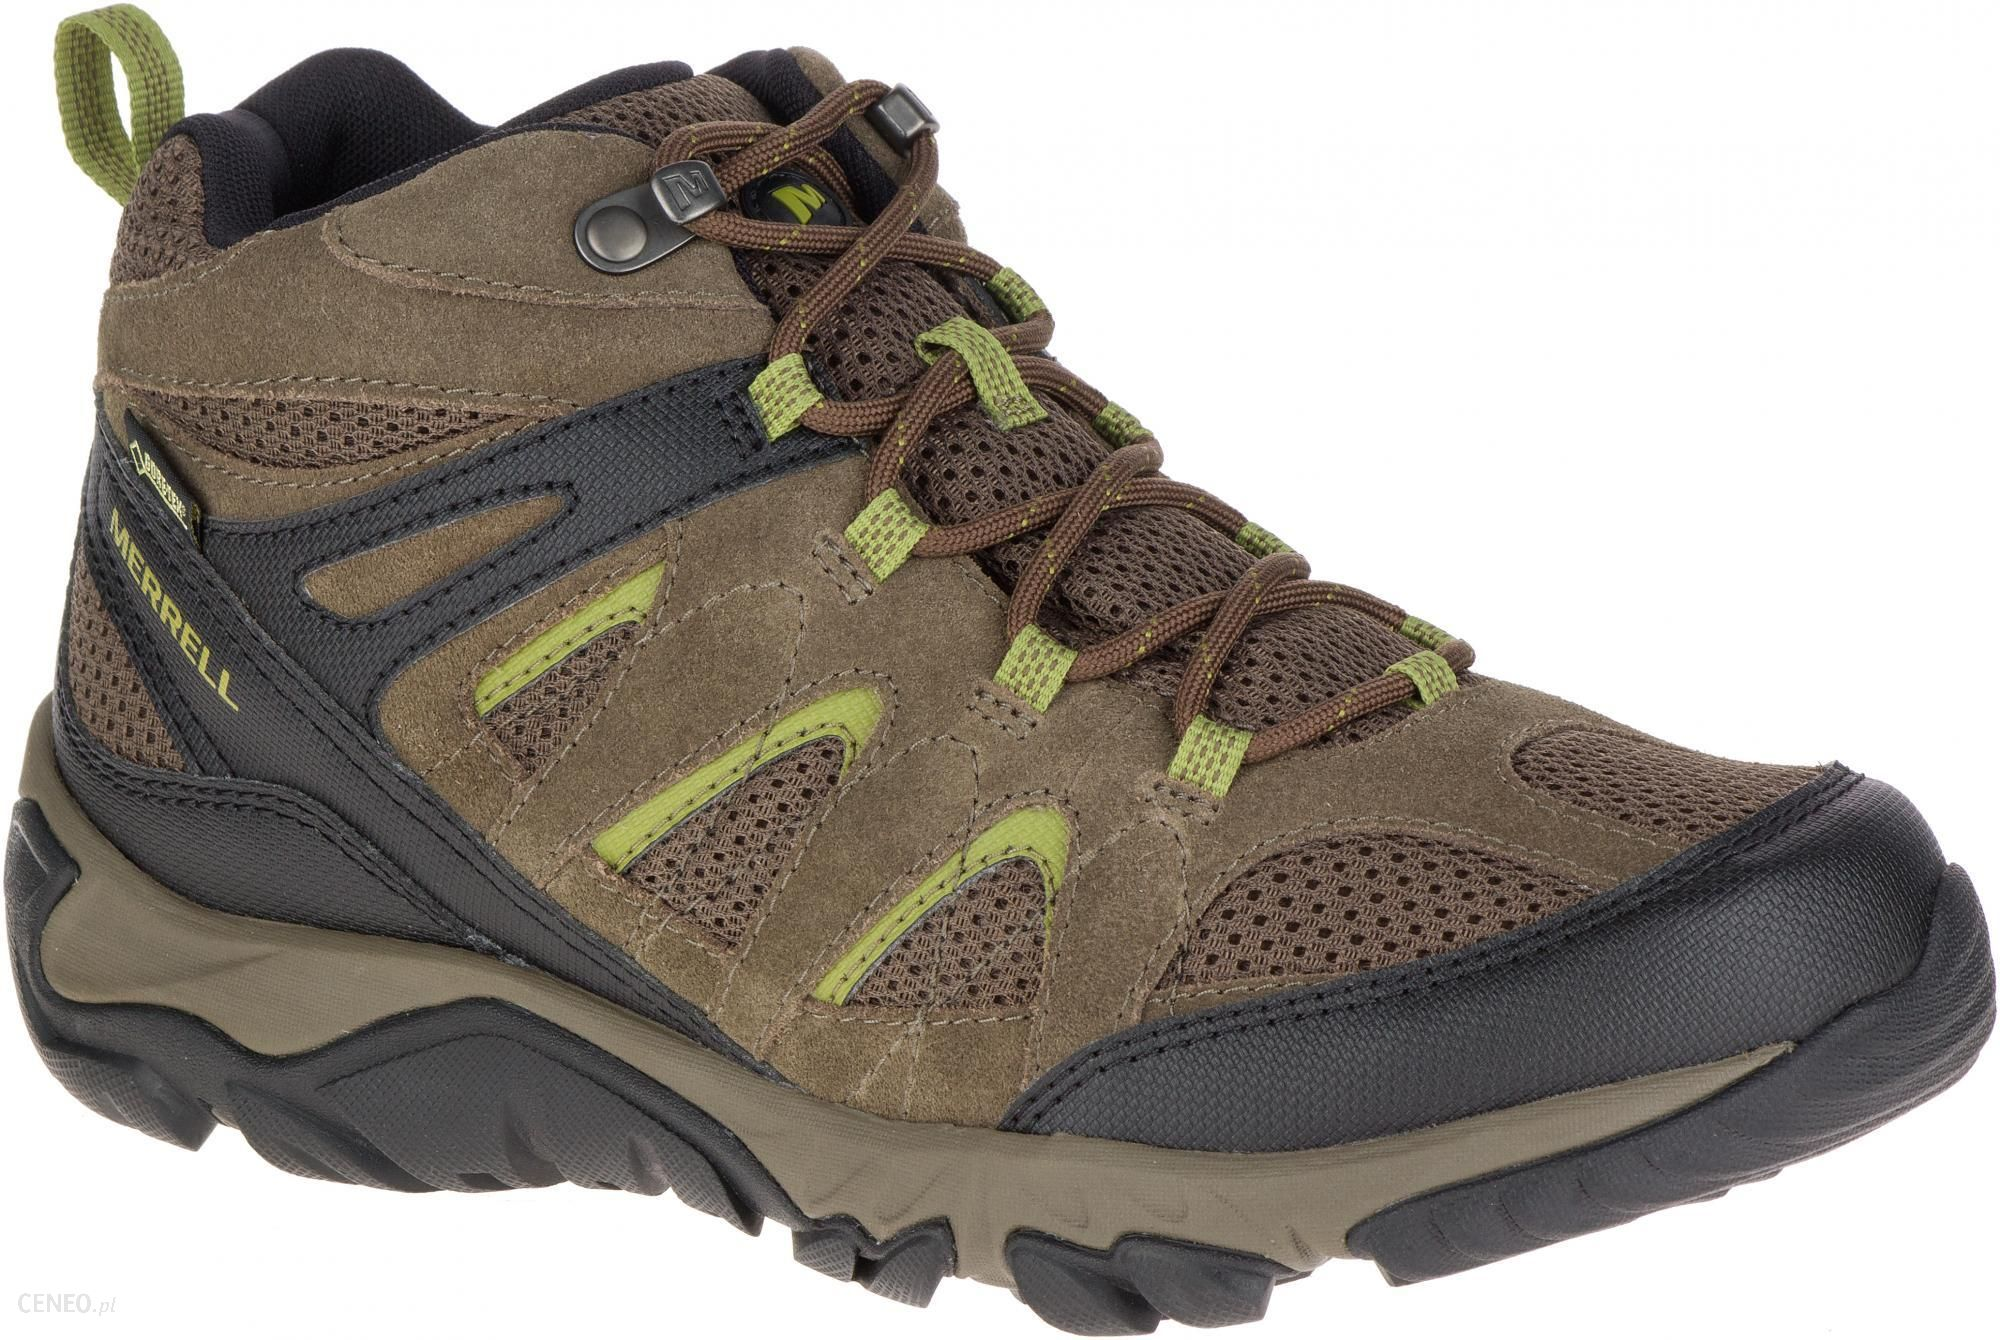 d5db7cd0de722 Merrell Outmost Mid Vent Gtx Boulder - Ceny i opinie - Ceneo.pl